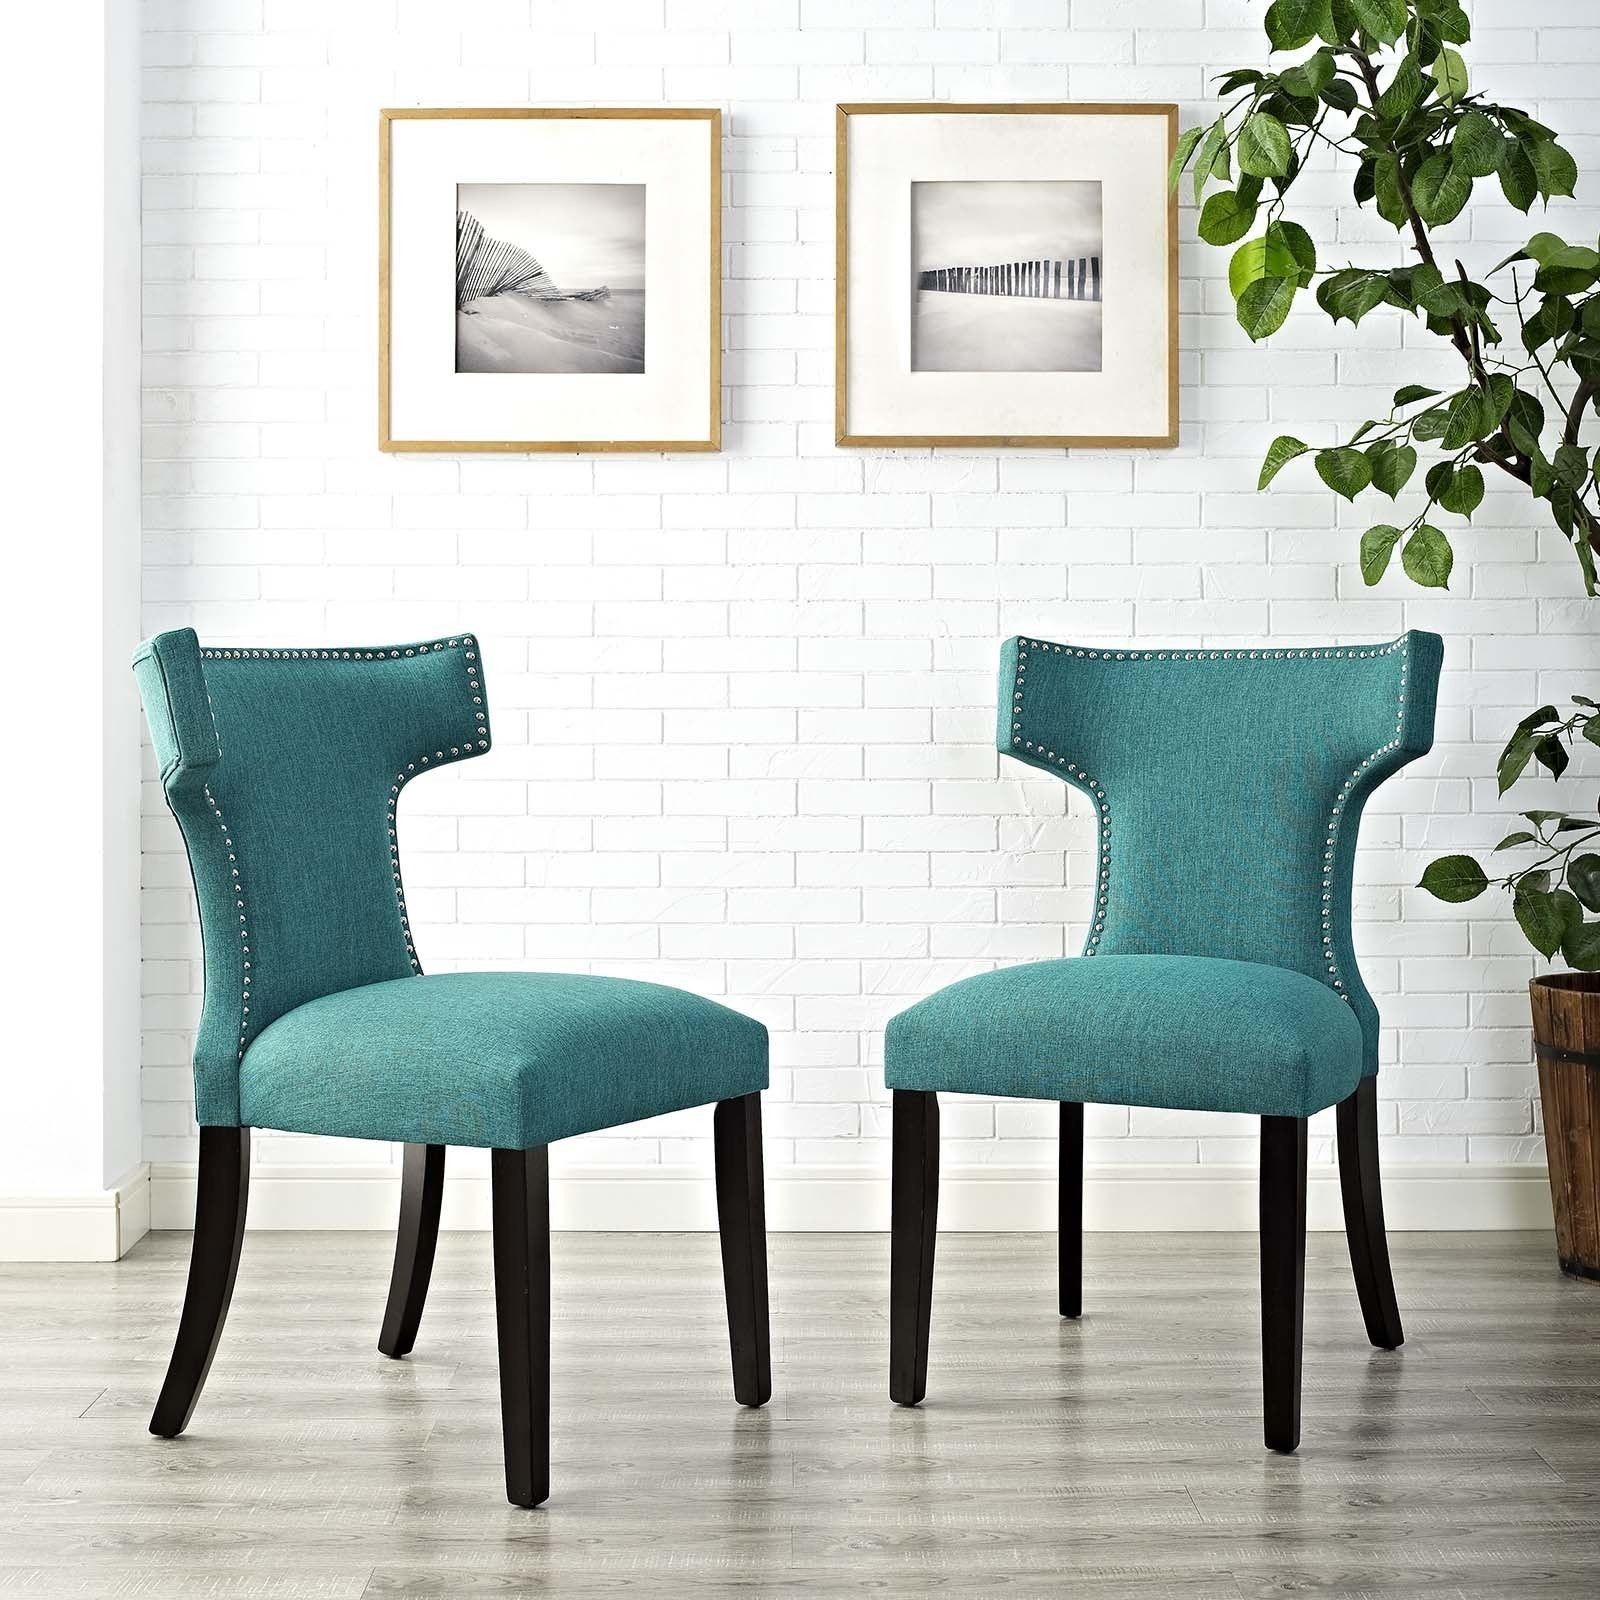 Modway Fabric Curve Dining Chair (Set of 2) - Free Shipping Today ...